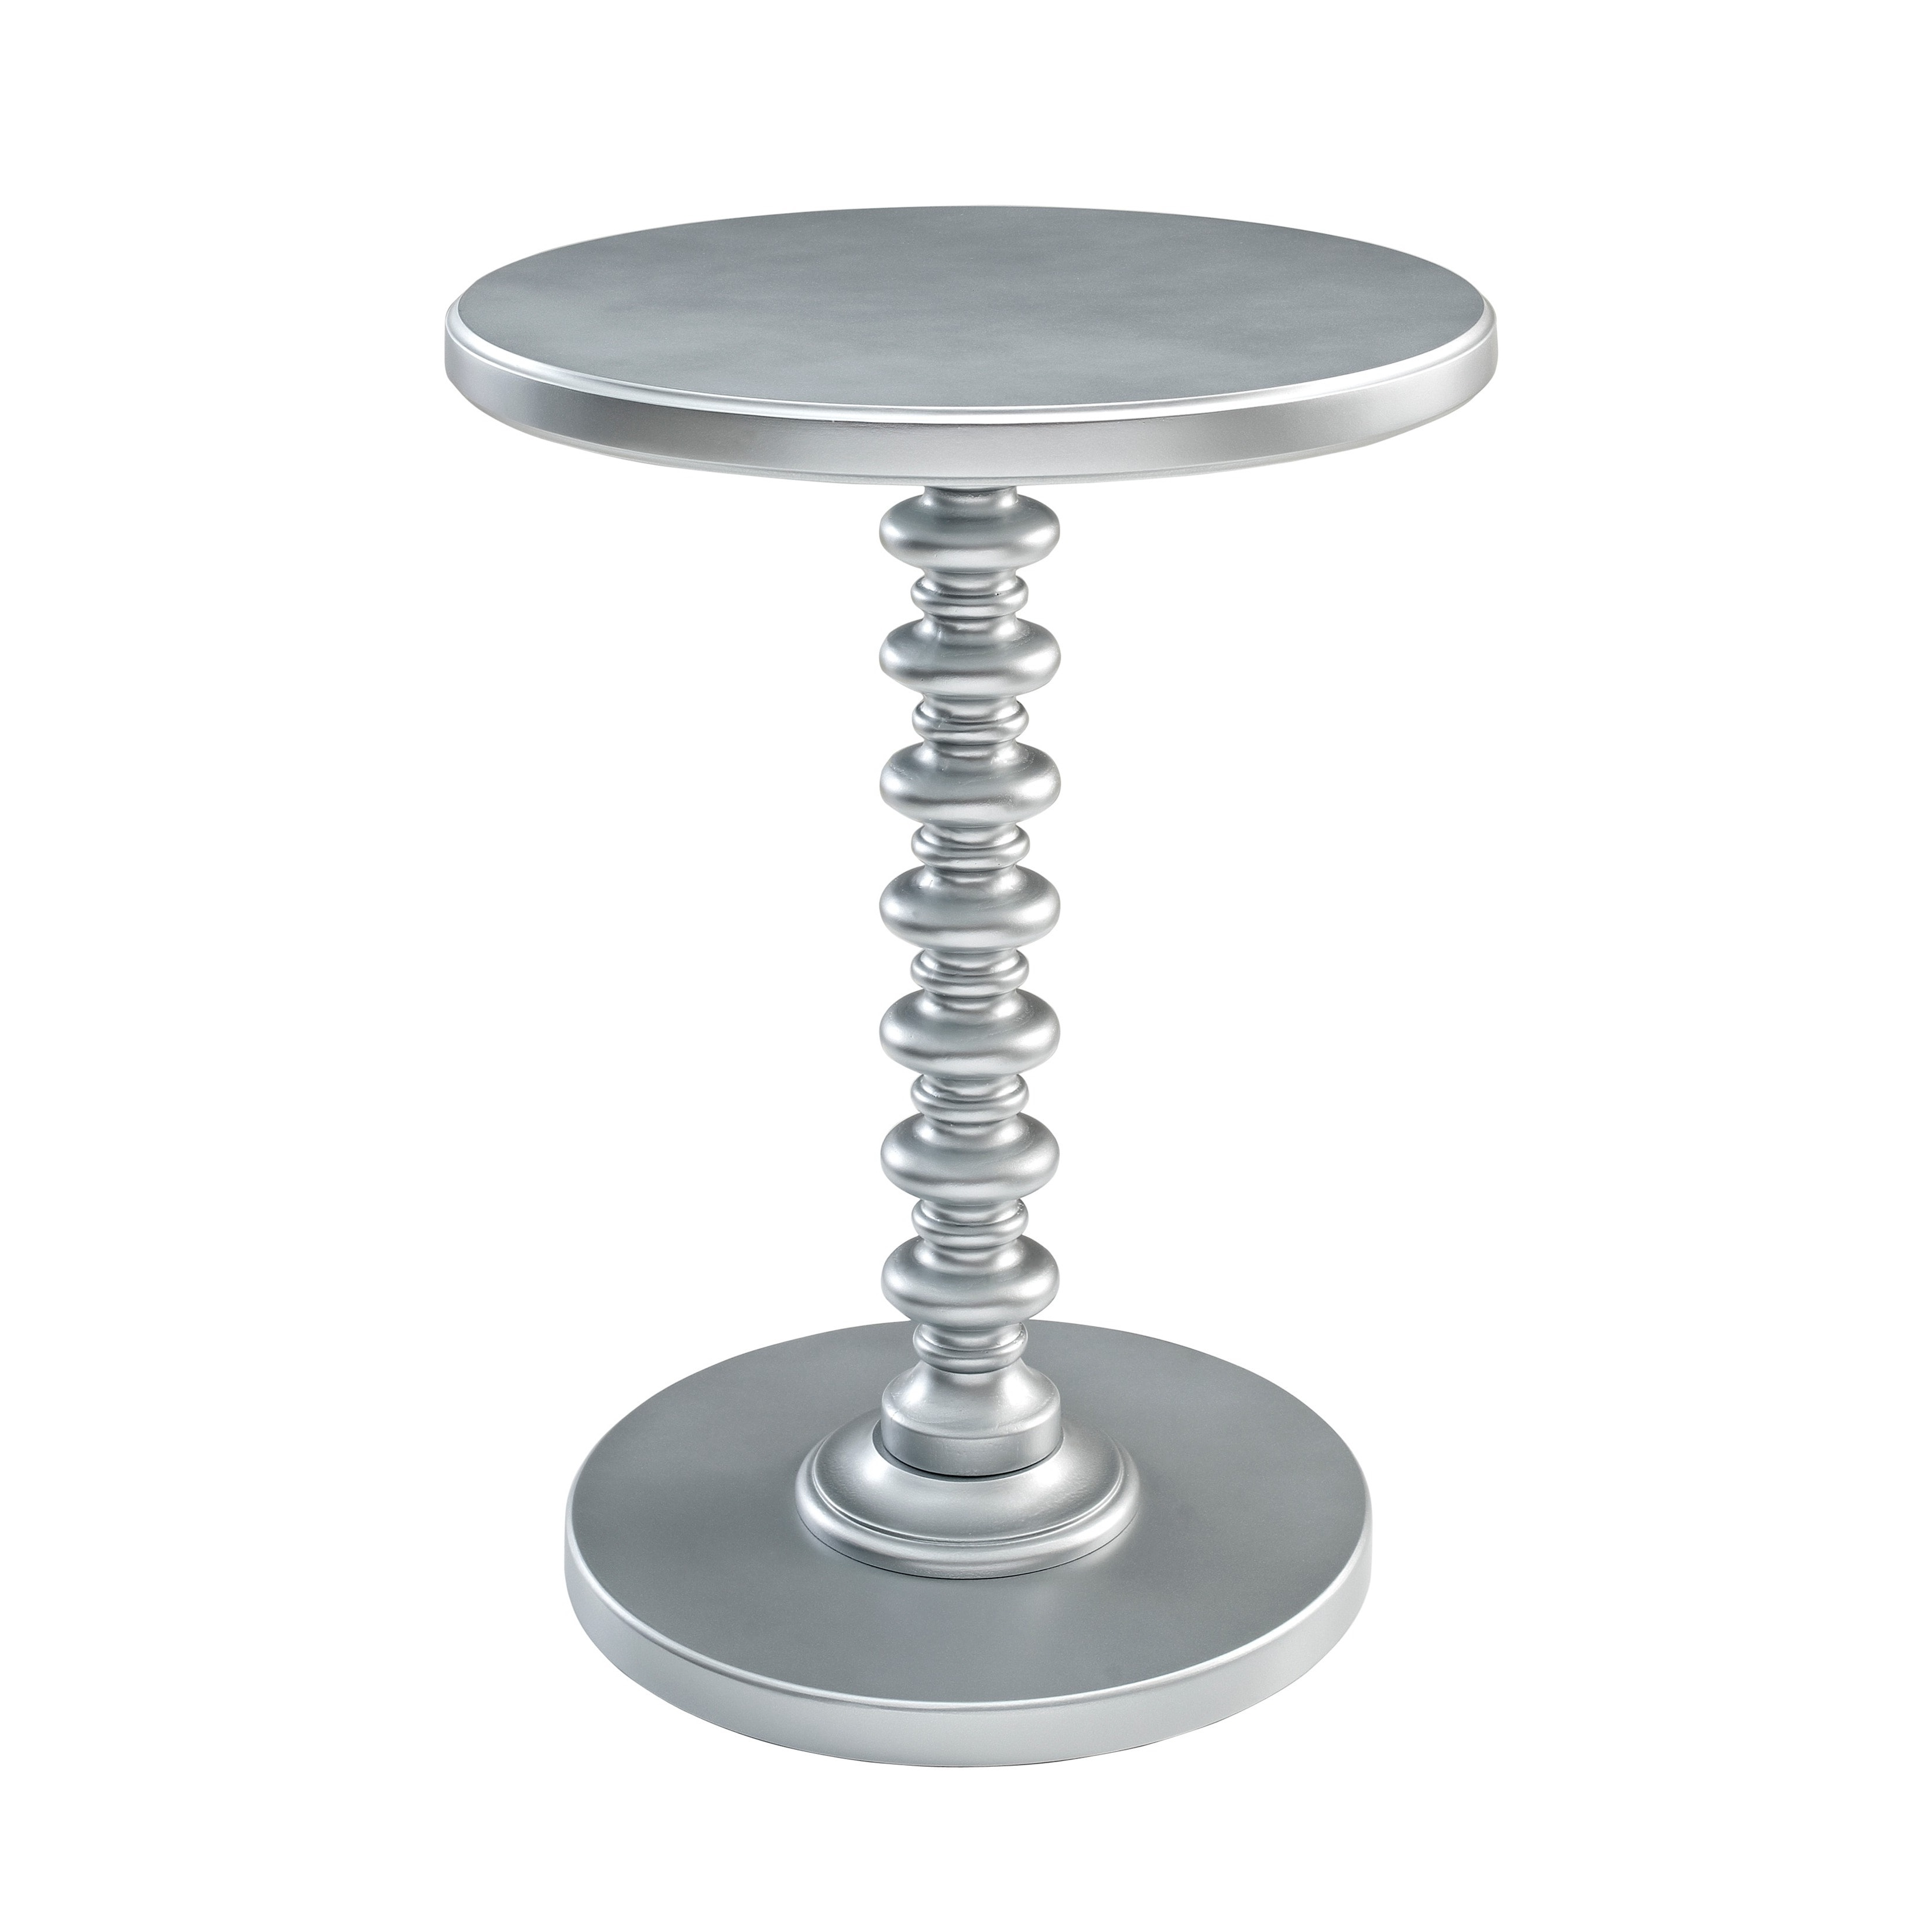 Powell Ariana Round Spindle Table by Overstock